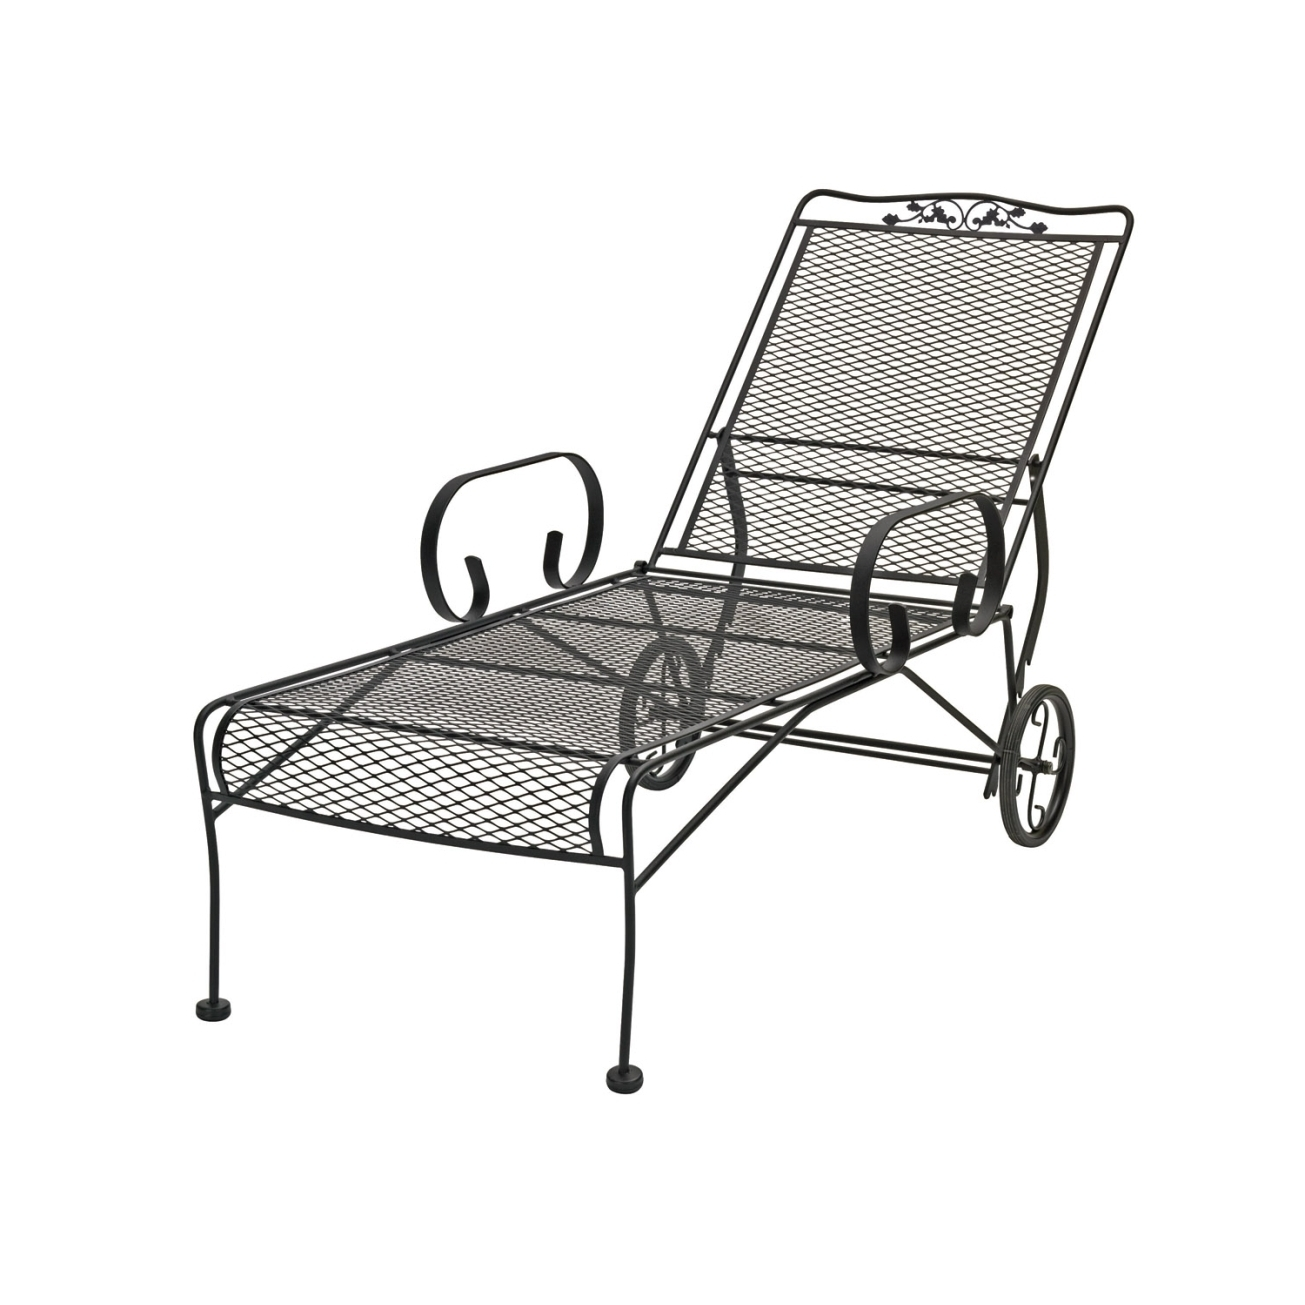 Hotel Chaise Lounge Chairs Throughout Most Popular Outdoor : Outdoor Furniture Hotel Pool Furniture Liquidators Cheap (View 14 of 15)